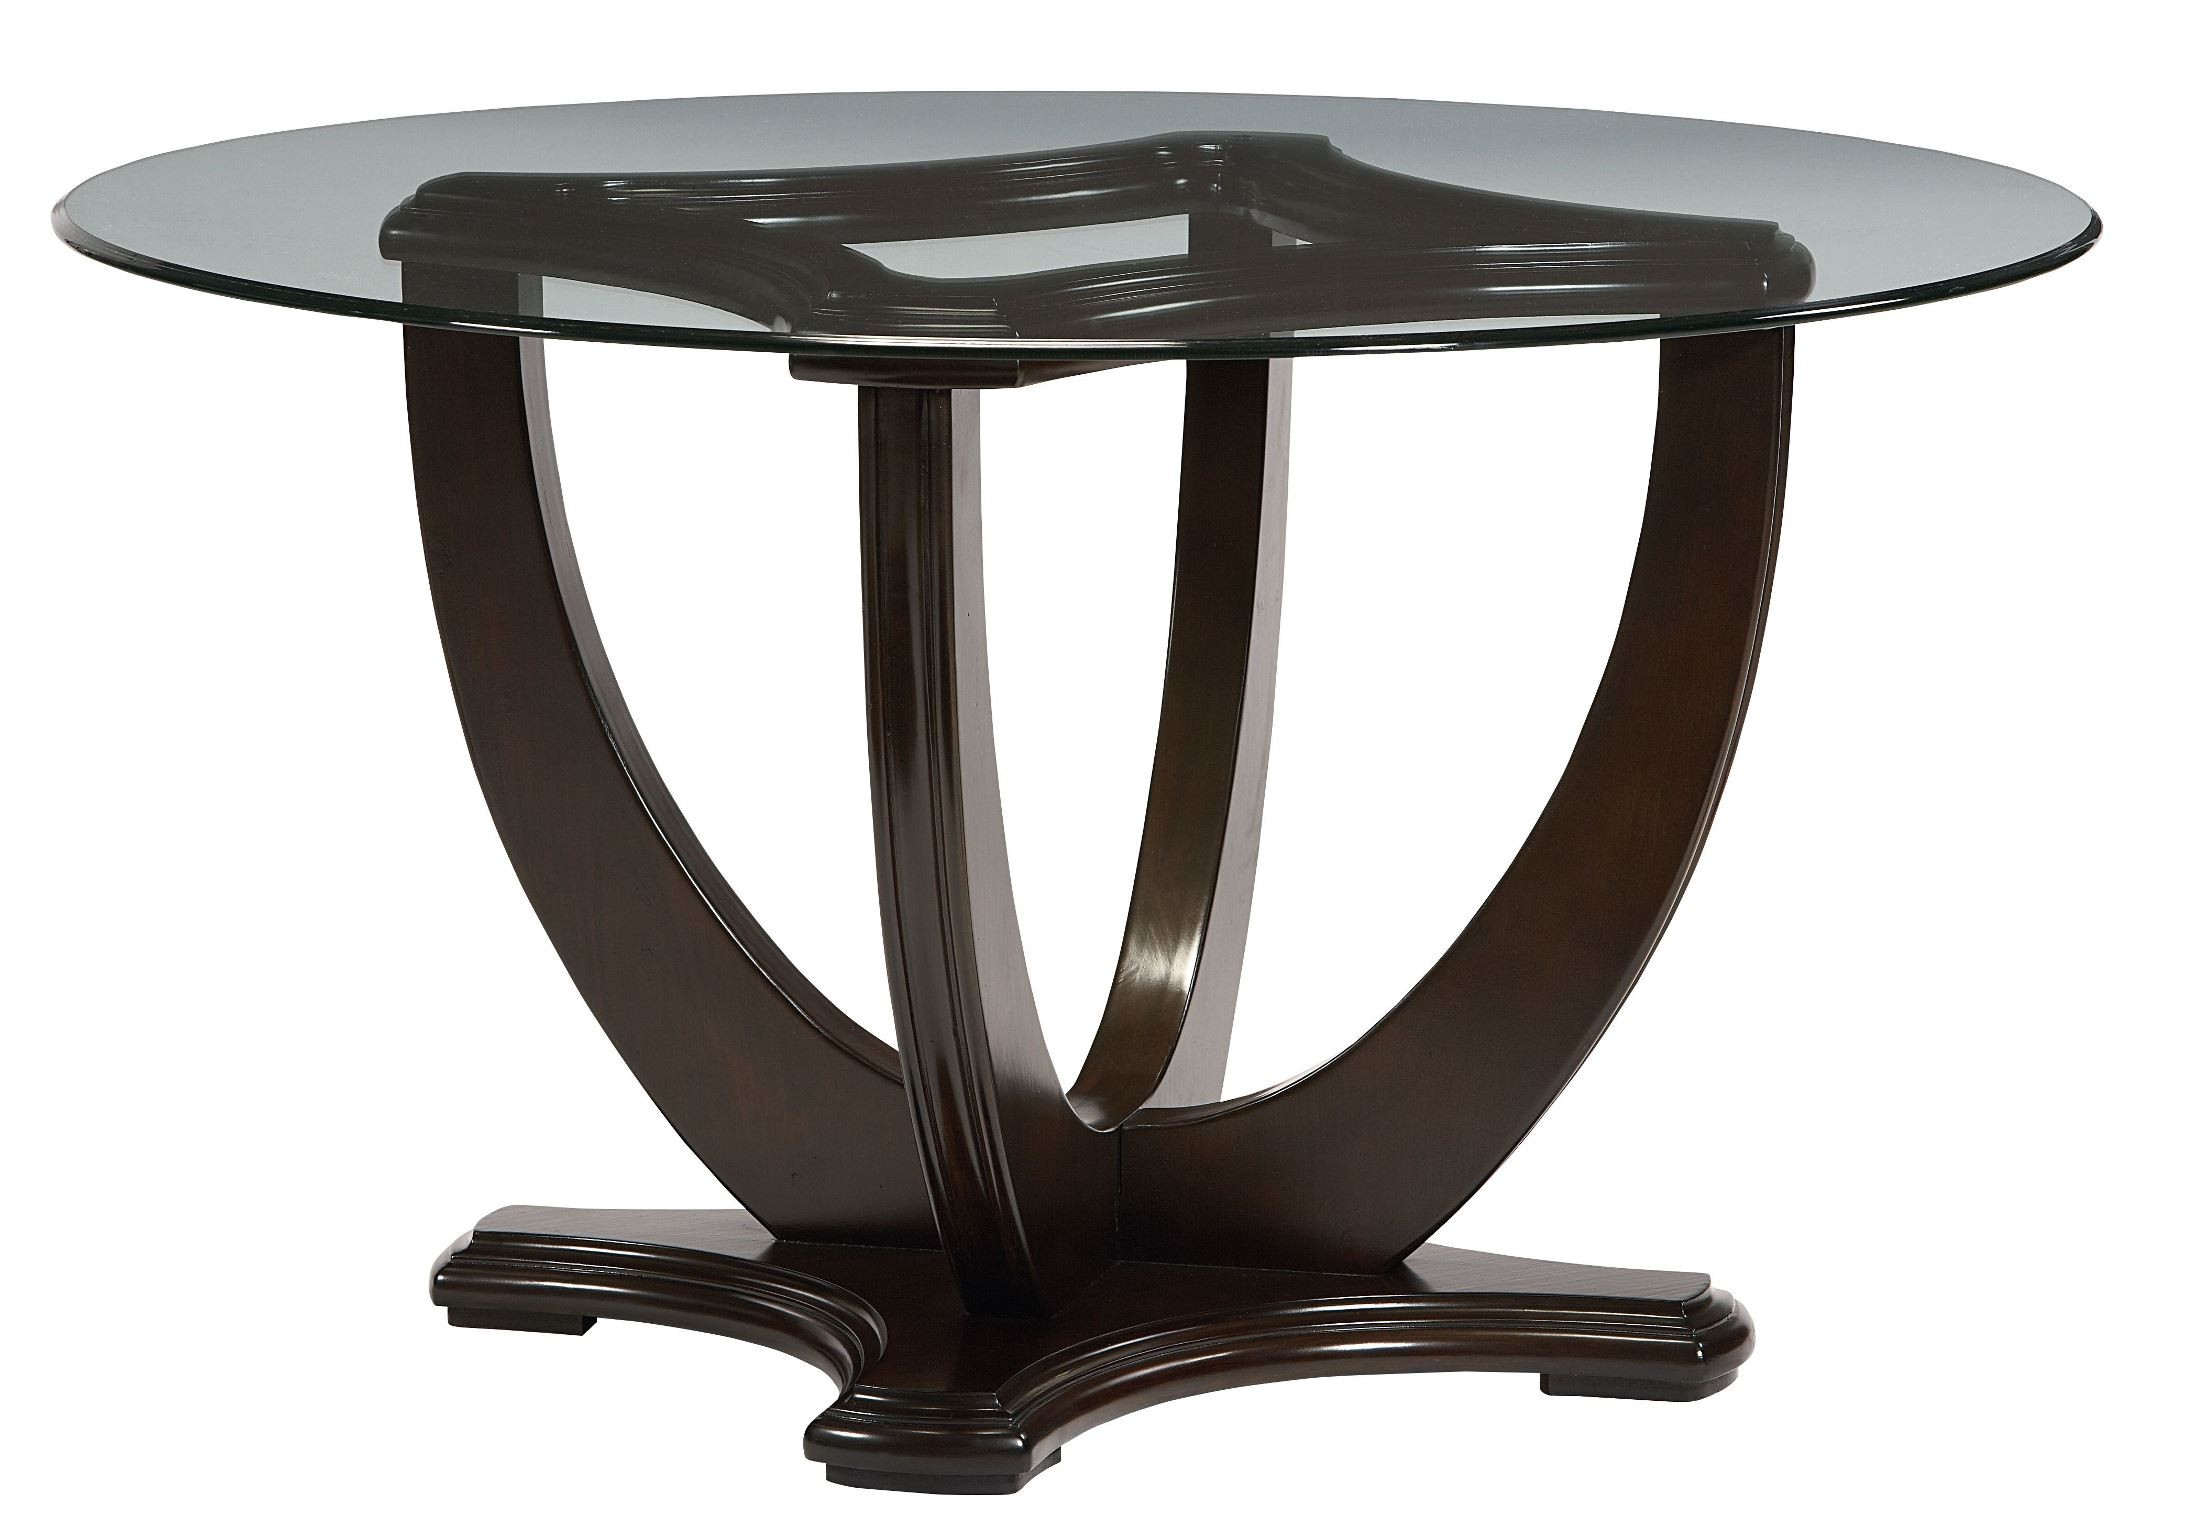 mulholland boulevard dark brown rnd glass top pedestal dining table from standard 10021054. Black Bedroom Furniture Sets. Home Design Ideas